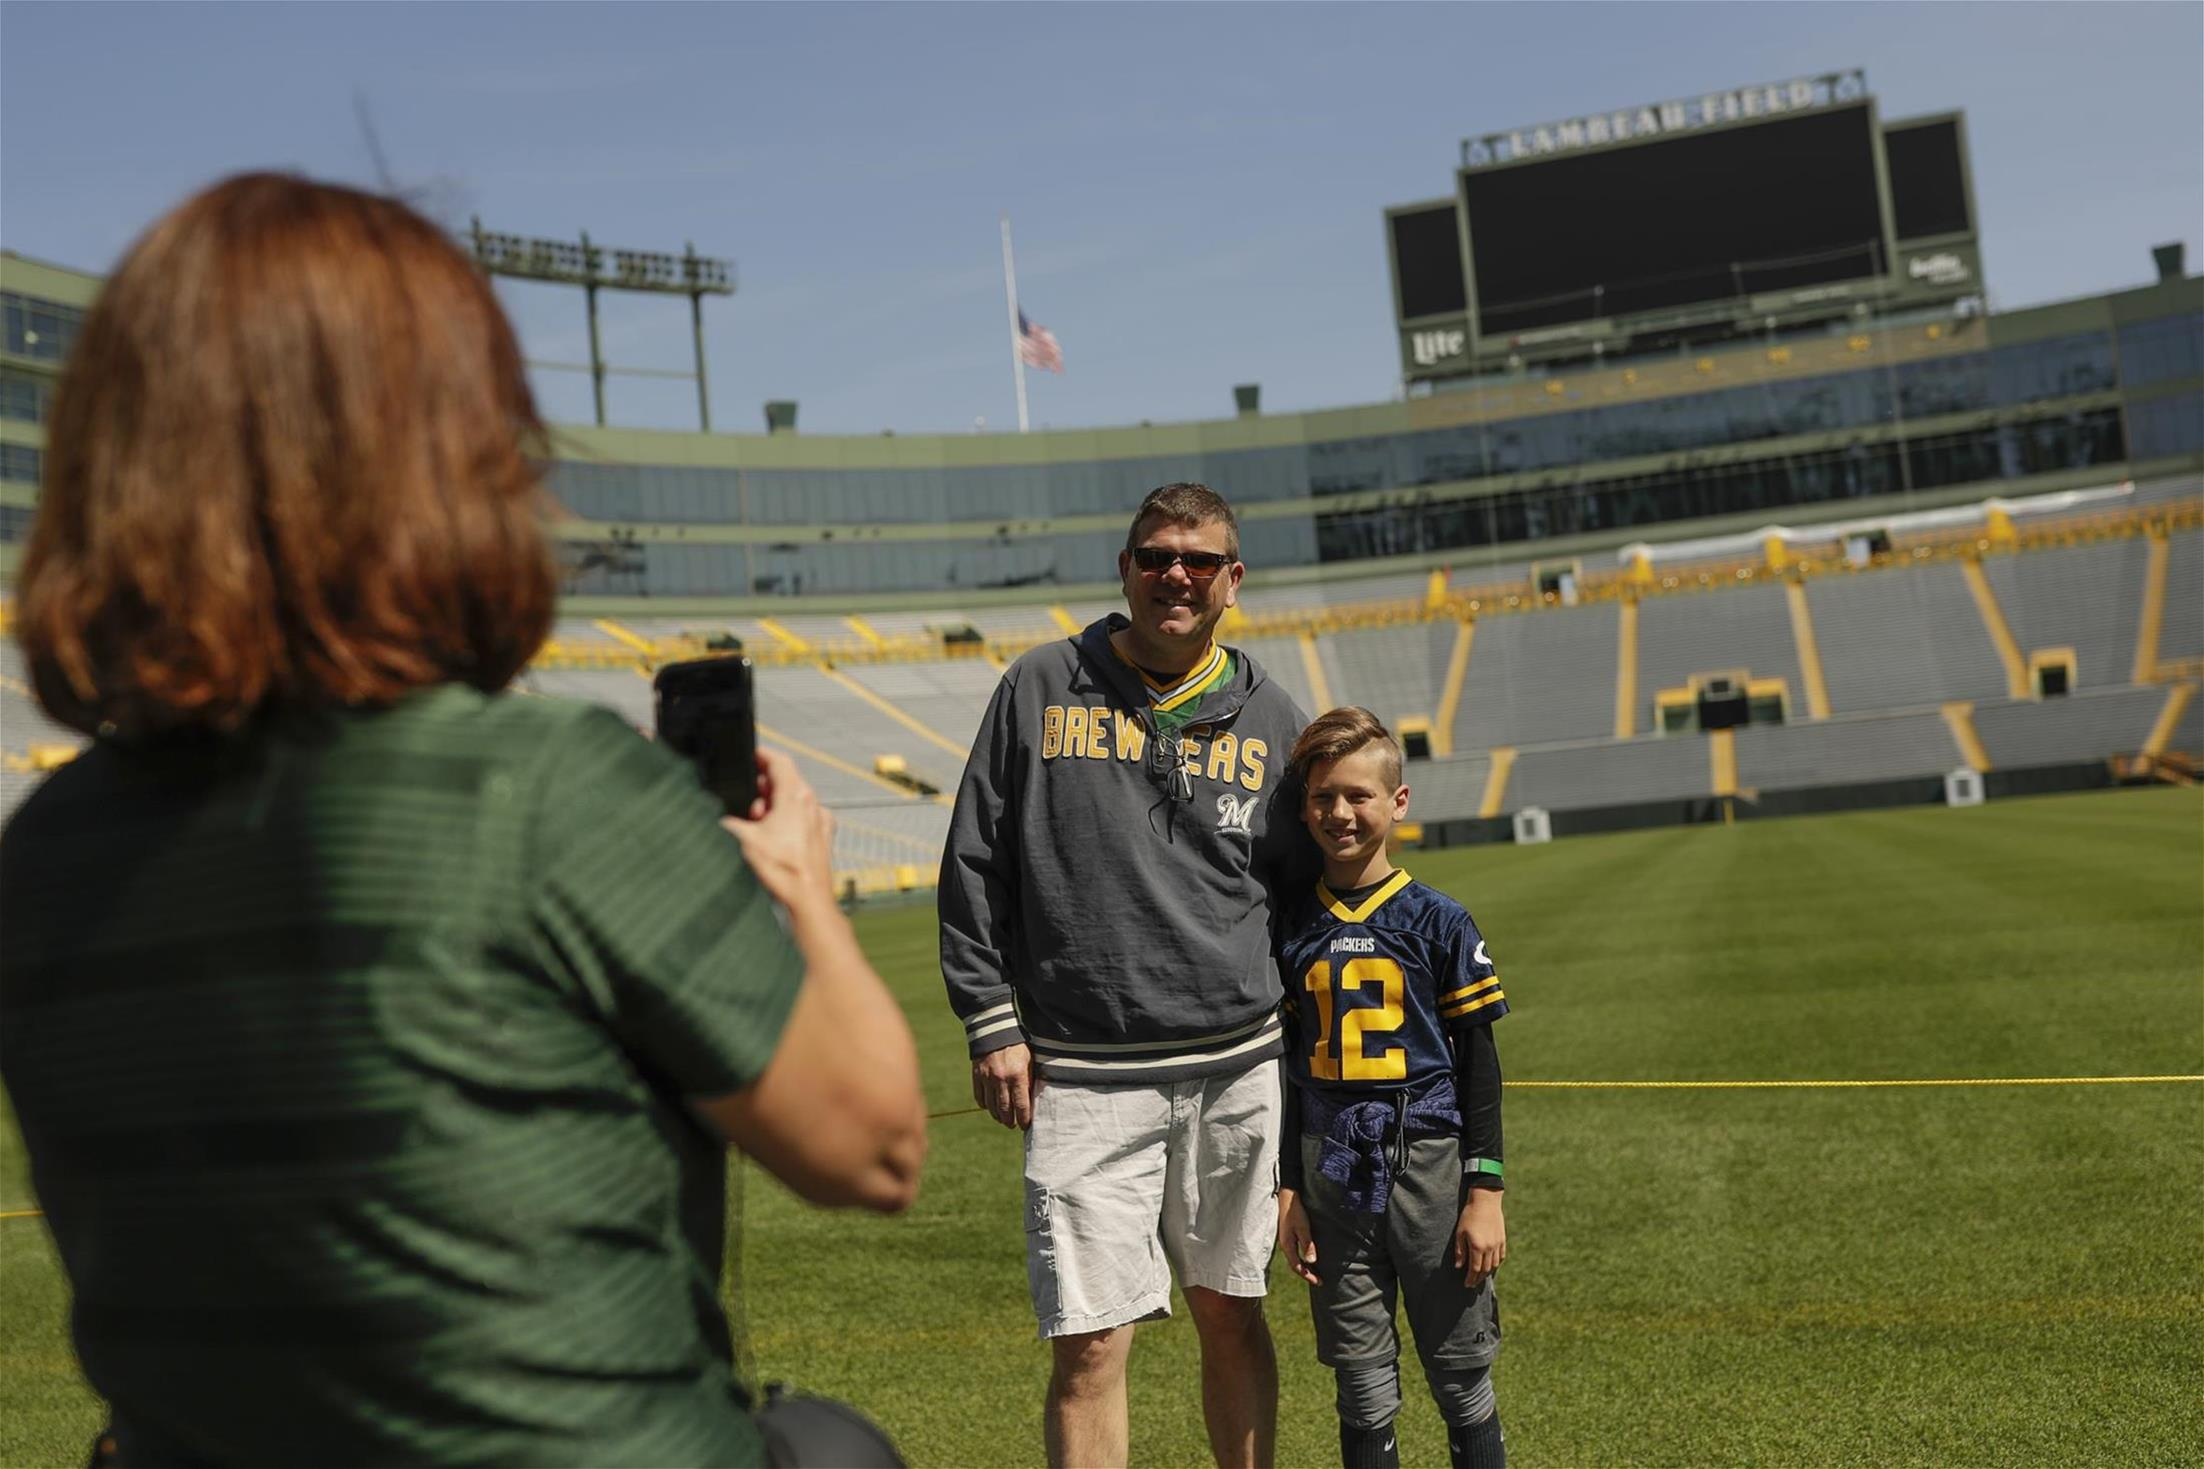 Tour guide taking a photos of guests near Lambeau Field on a stadium tour.